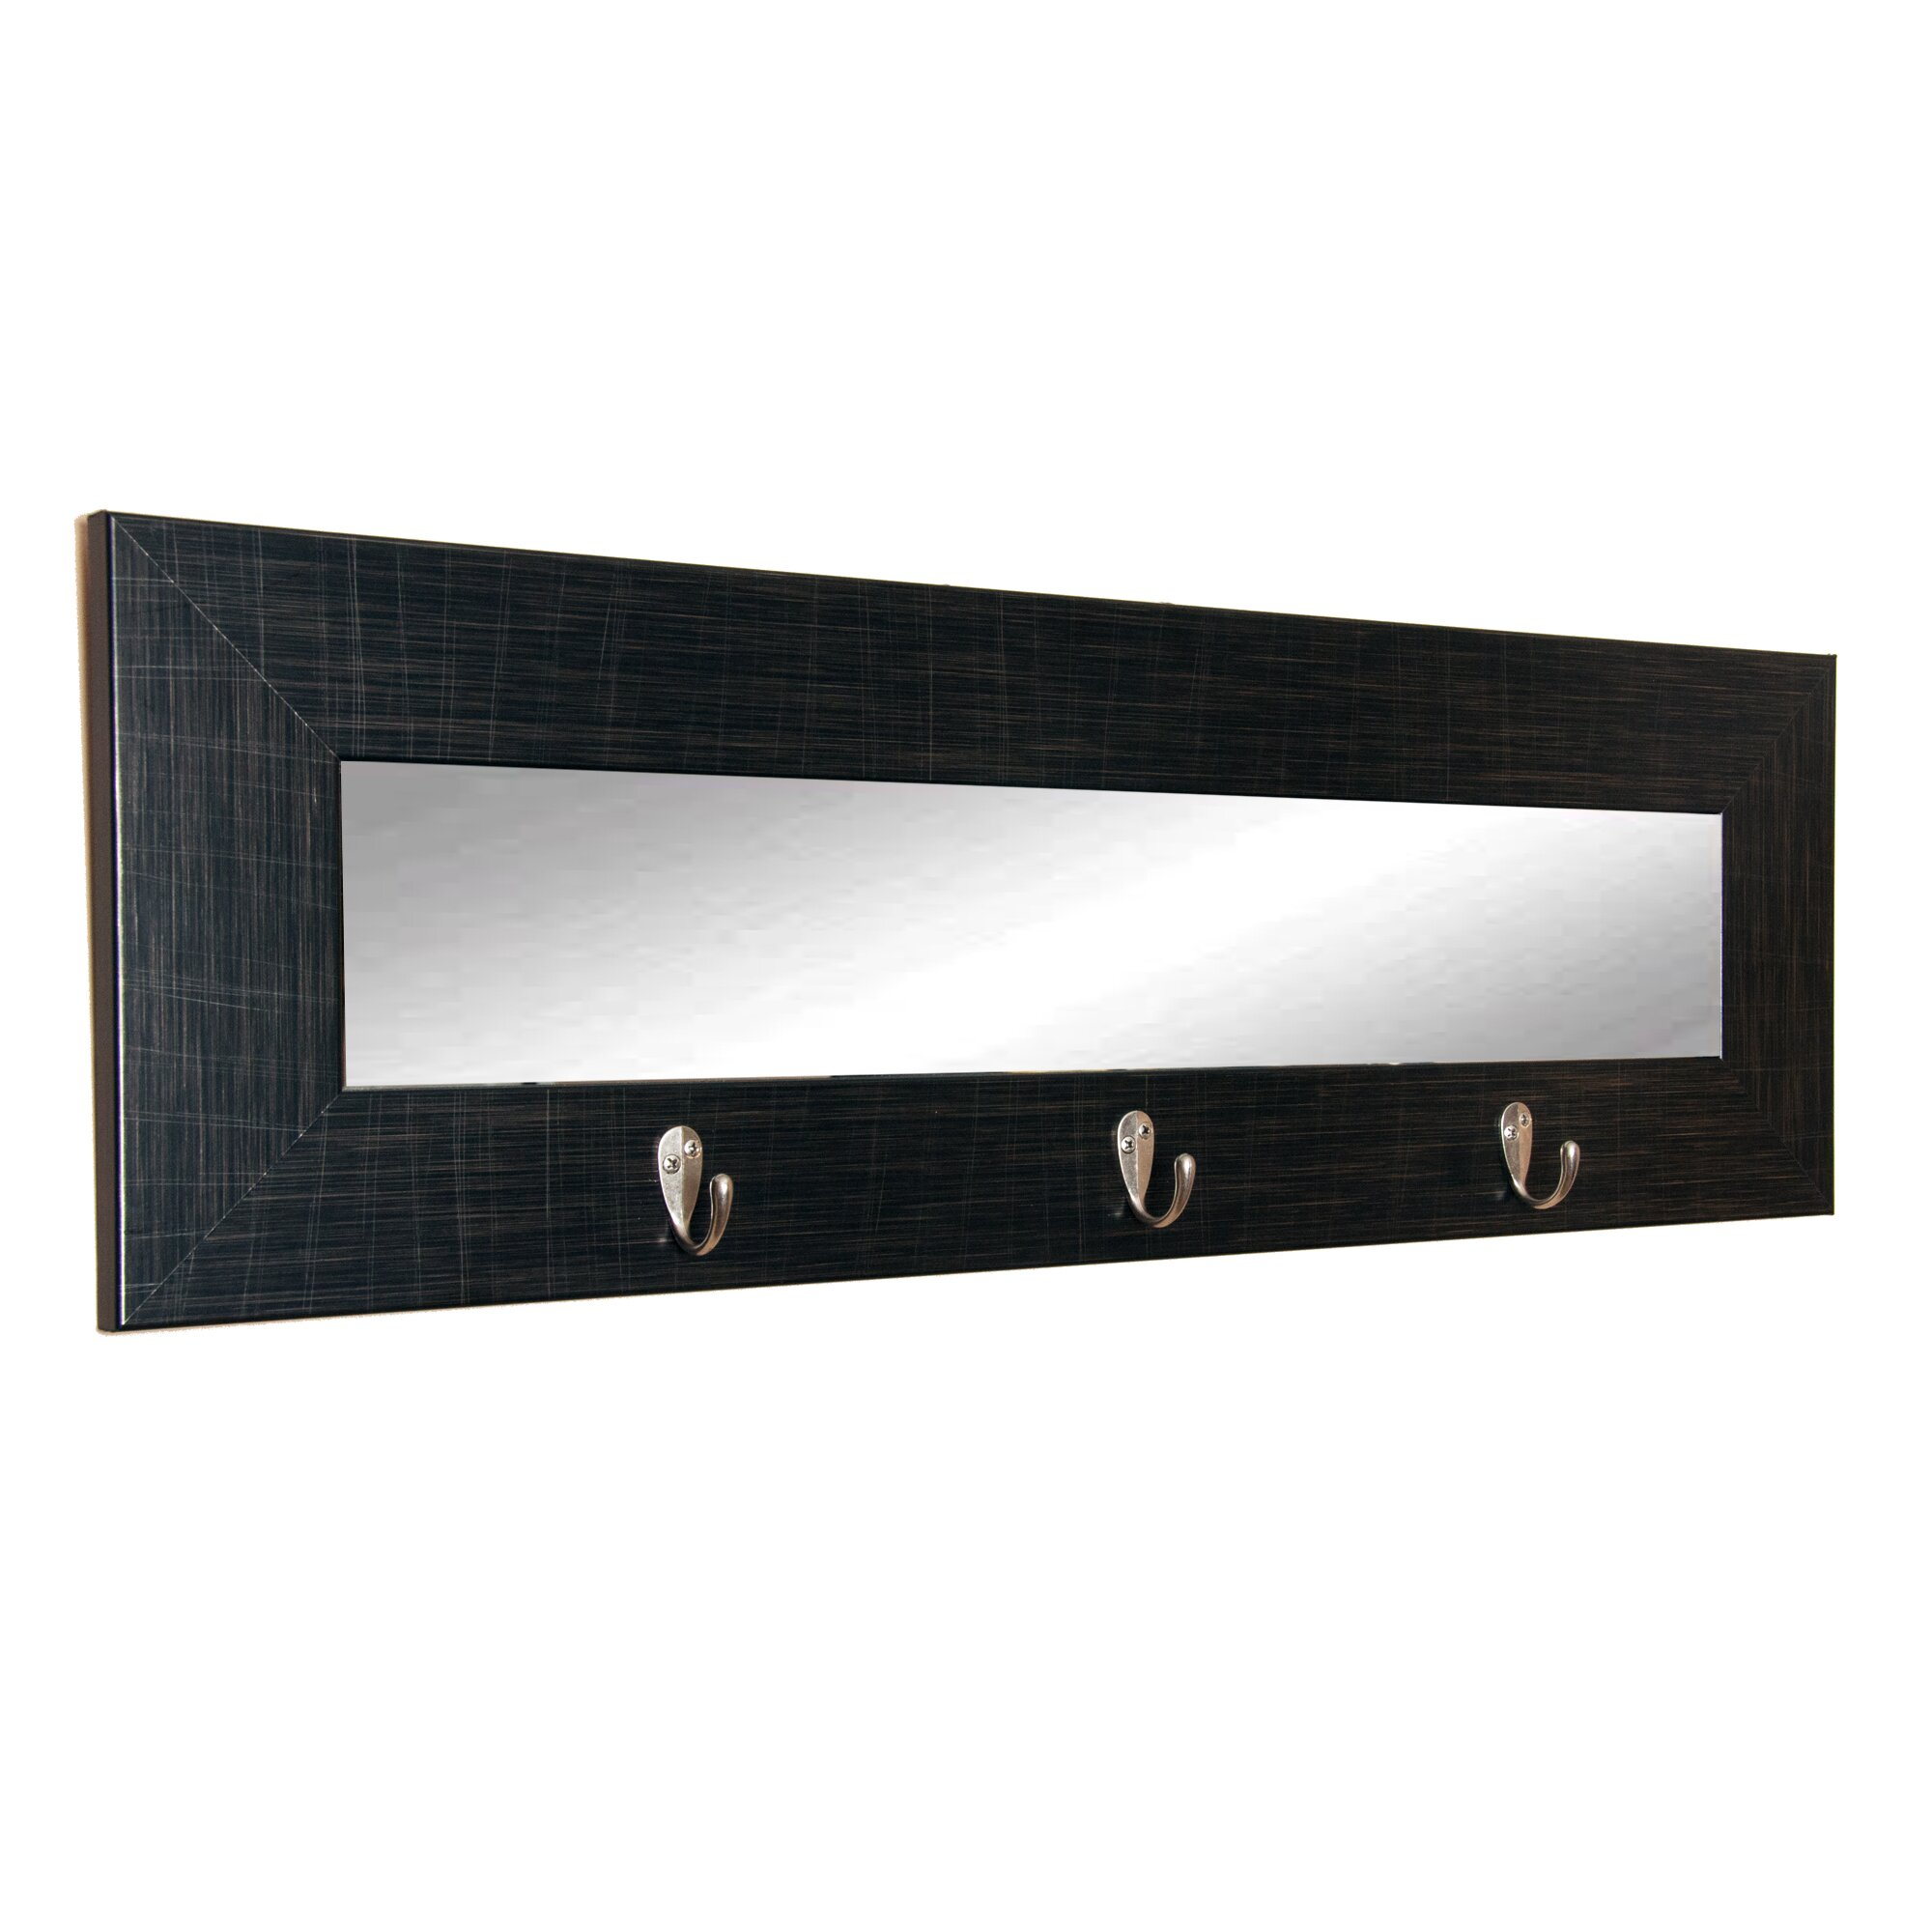 last look wall mirror with hook wayfair. Black Bedroom Furniture Sets. Home Design Ideas